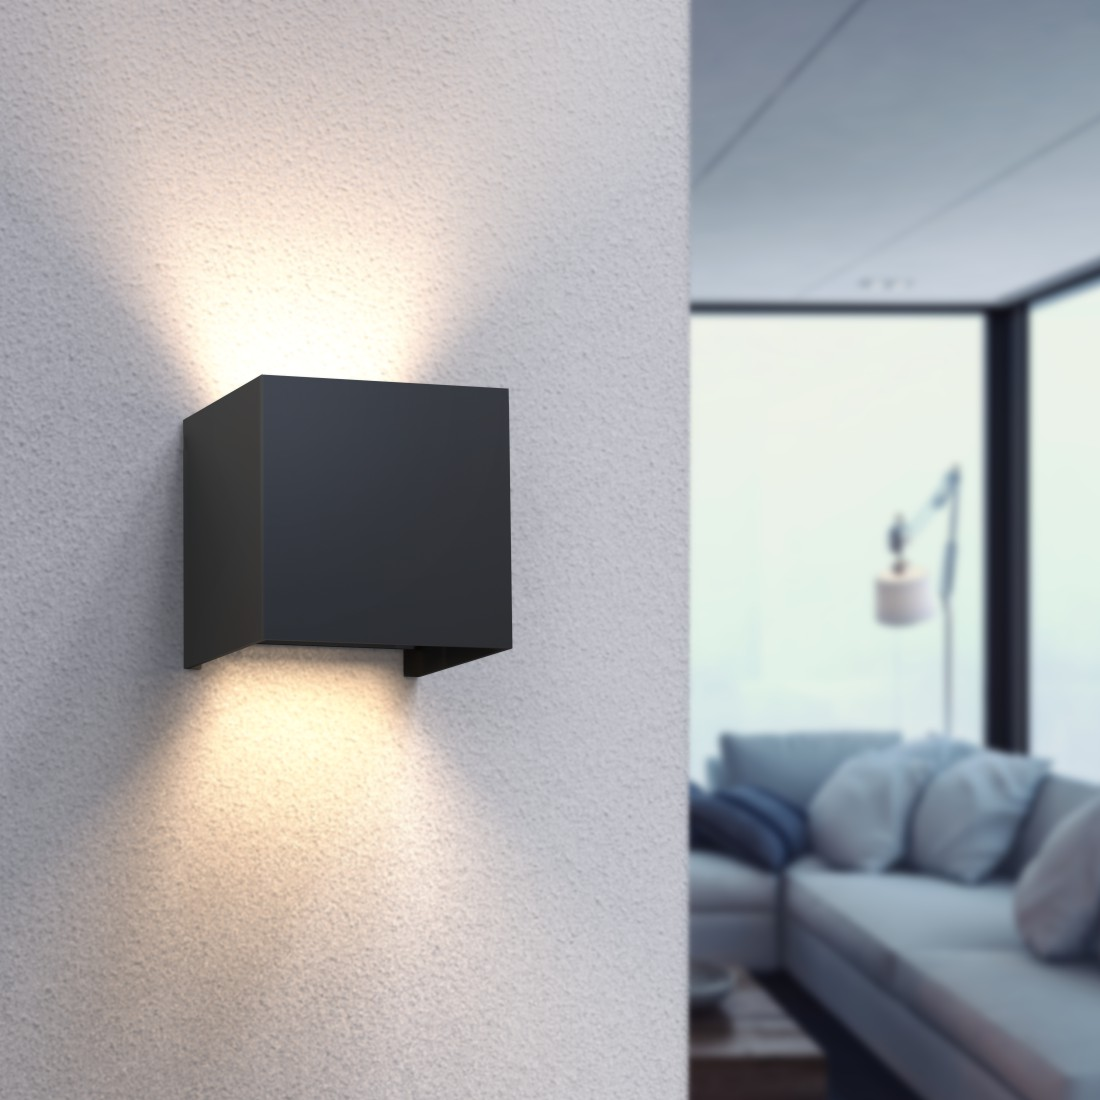 awx High-Res Appliance - Hama, WiFi Wall Light, Square, 10 cm, IP 44 for Indoors and Outdoors, black